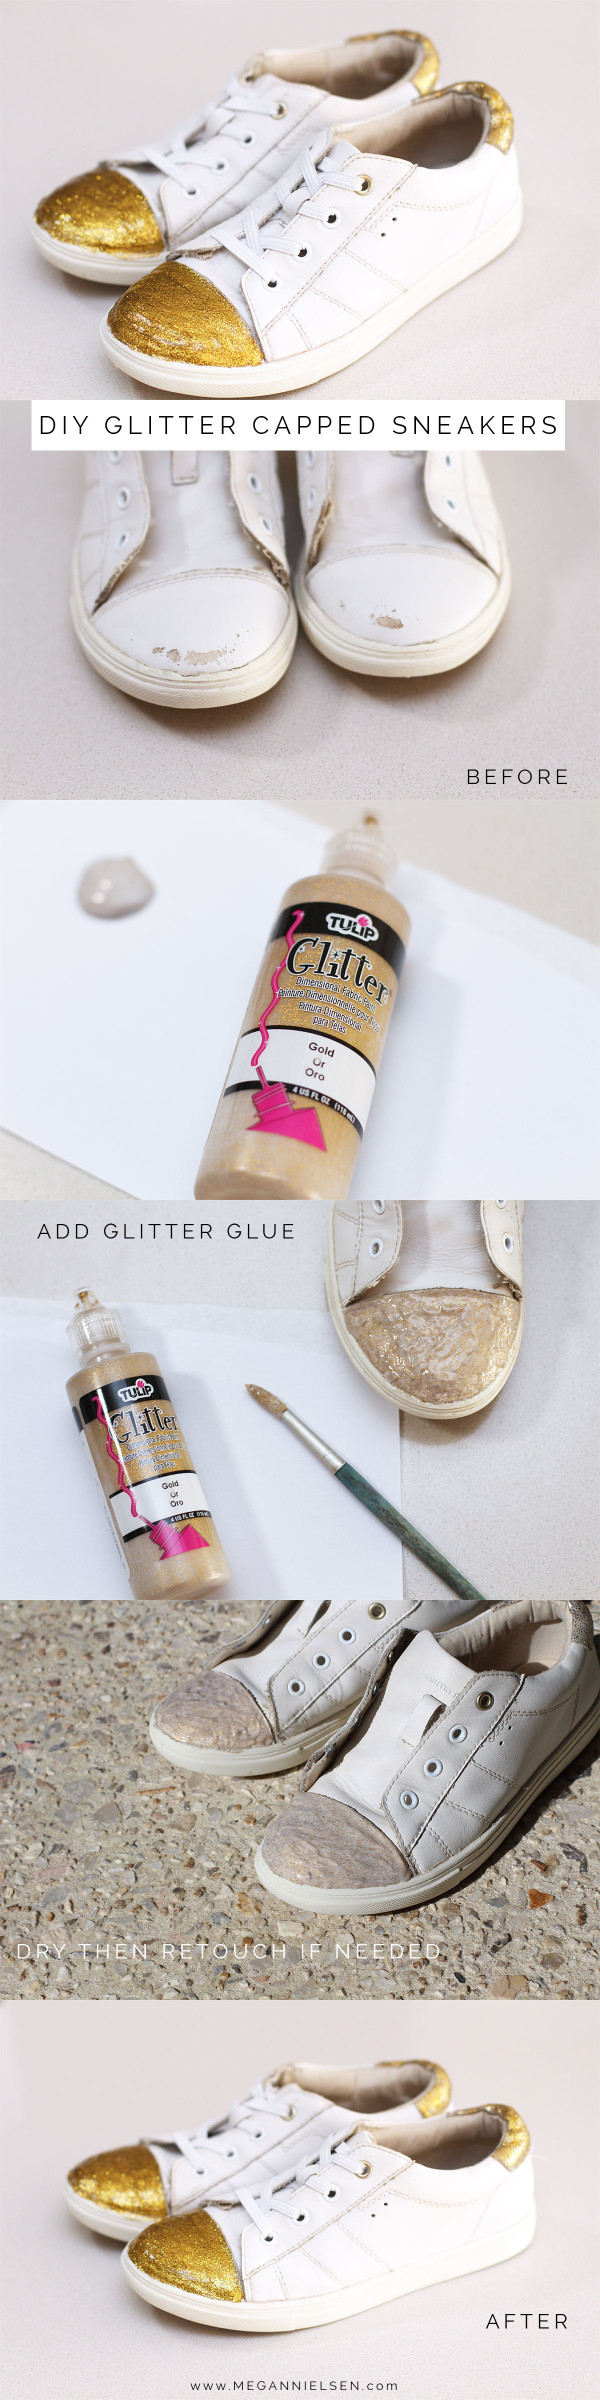 DIY glitter capped sneakers // Fixed your scuffed up sneakers by covering the toe caps in fabric glitter glue! Full tutorial on Megan Nielsen Design Diary